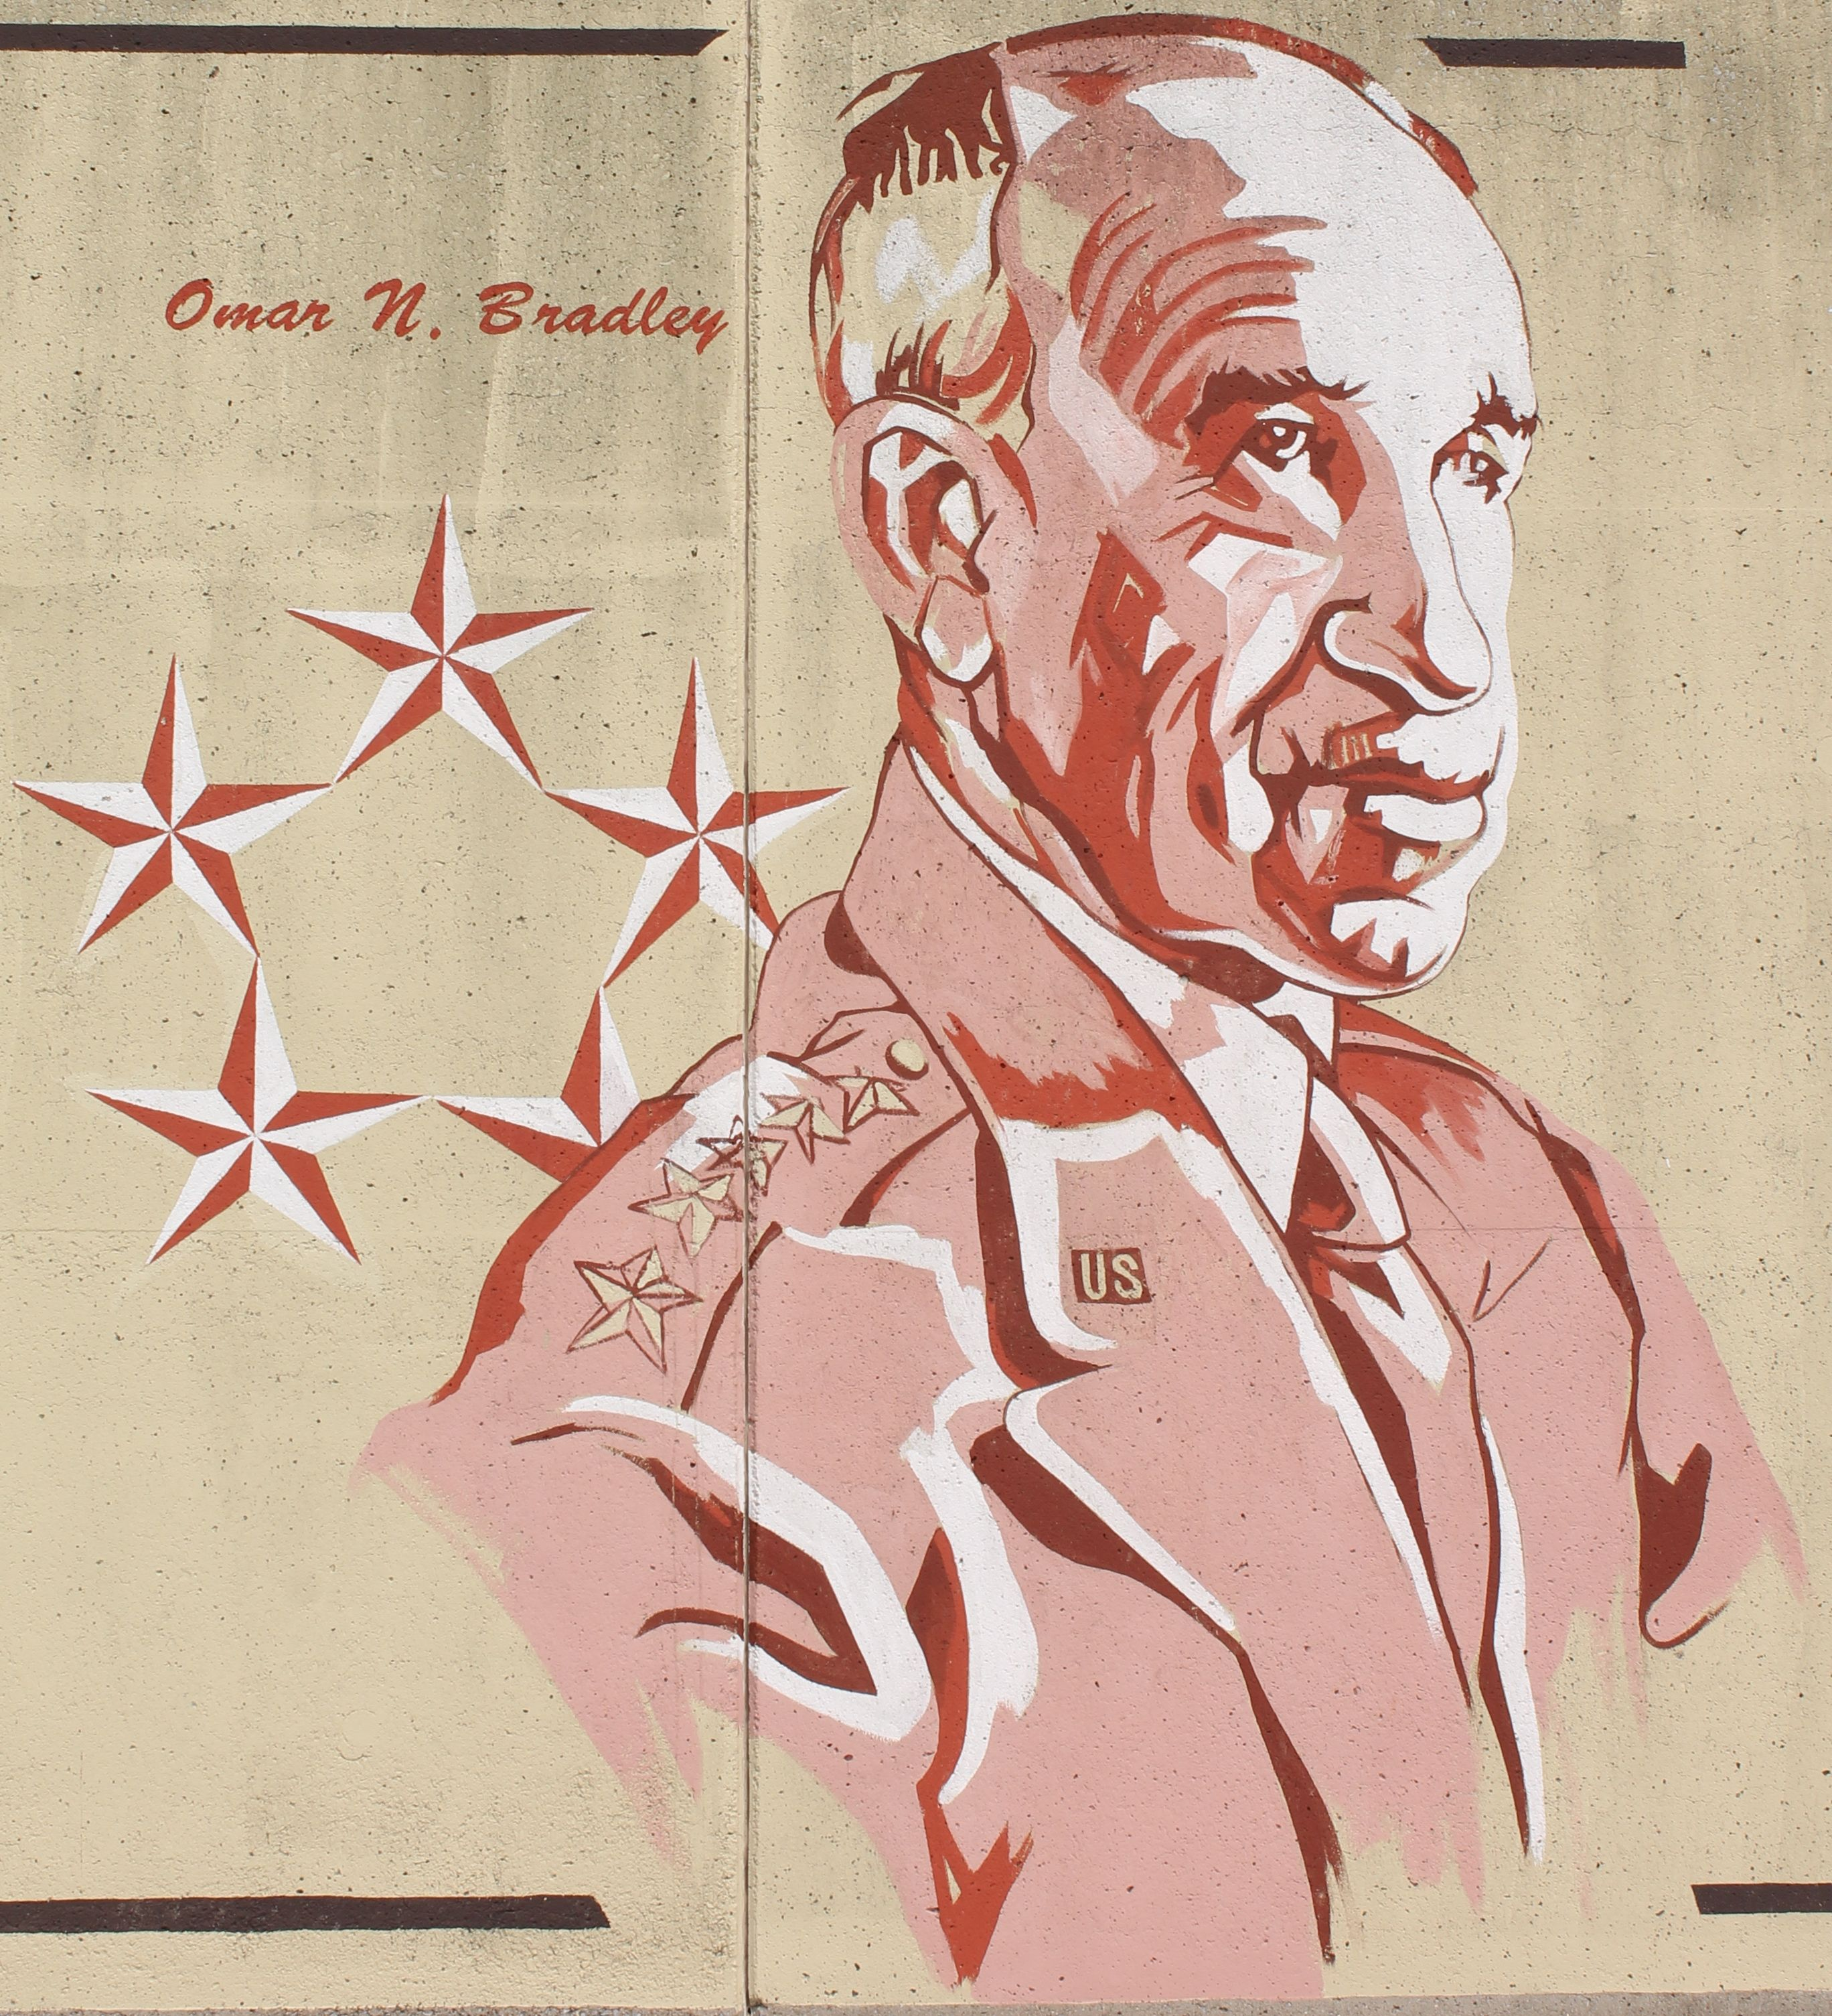 """Gen. Omar Bradley (1893-1981) was born in Clark, MO. Known as """"the soldier's general"""" during WWII, he commanded the largest American force ever united under one man's leadership. His military career extended over 38 years, during which he attained the title of Chairman of the Joint Chiefs of Staff. -Old Town Cape"""